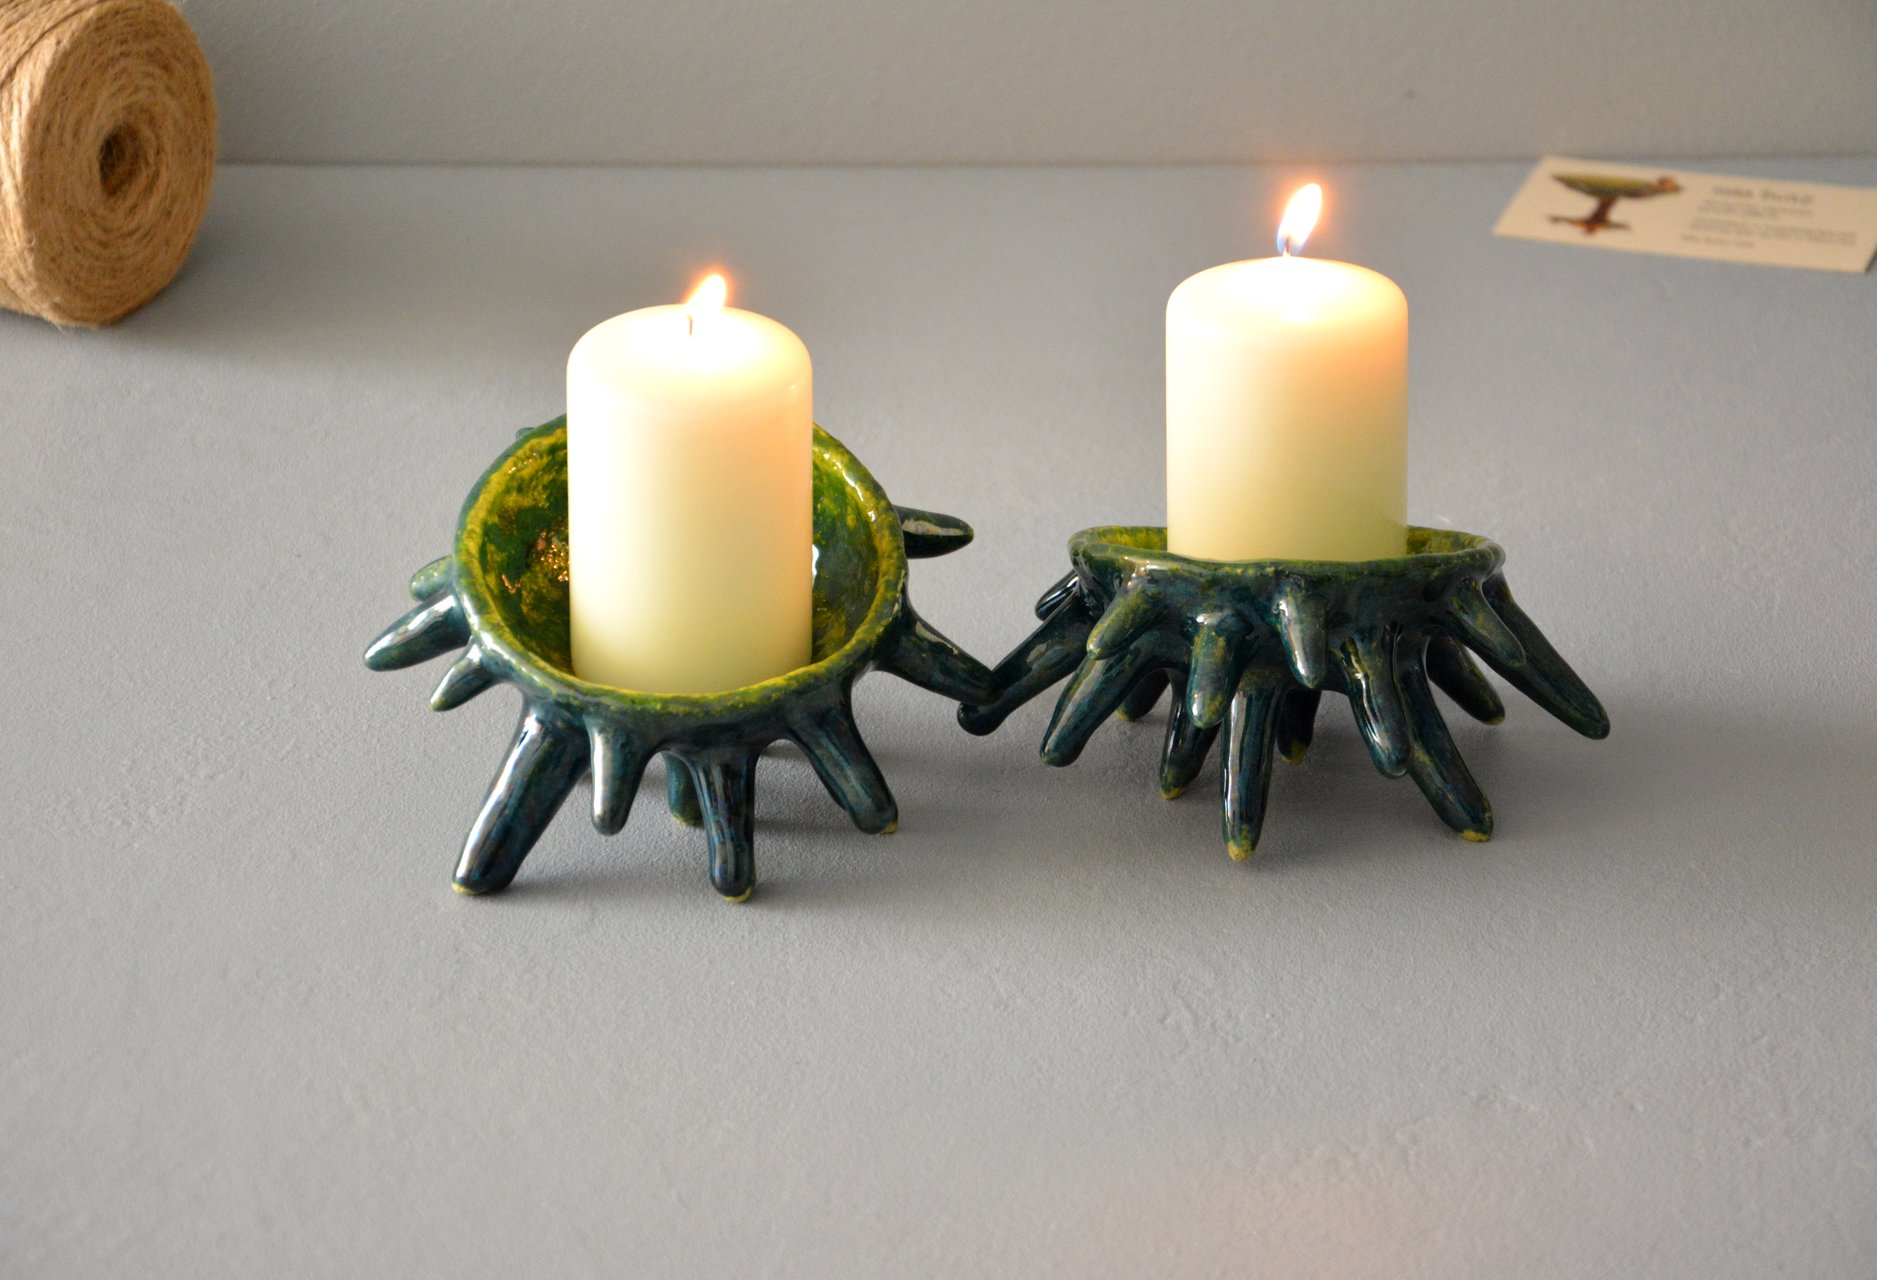 Spikes - Ceramic Candl-holders, diameter - 10 cm, photo 3 of 7.